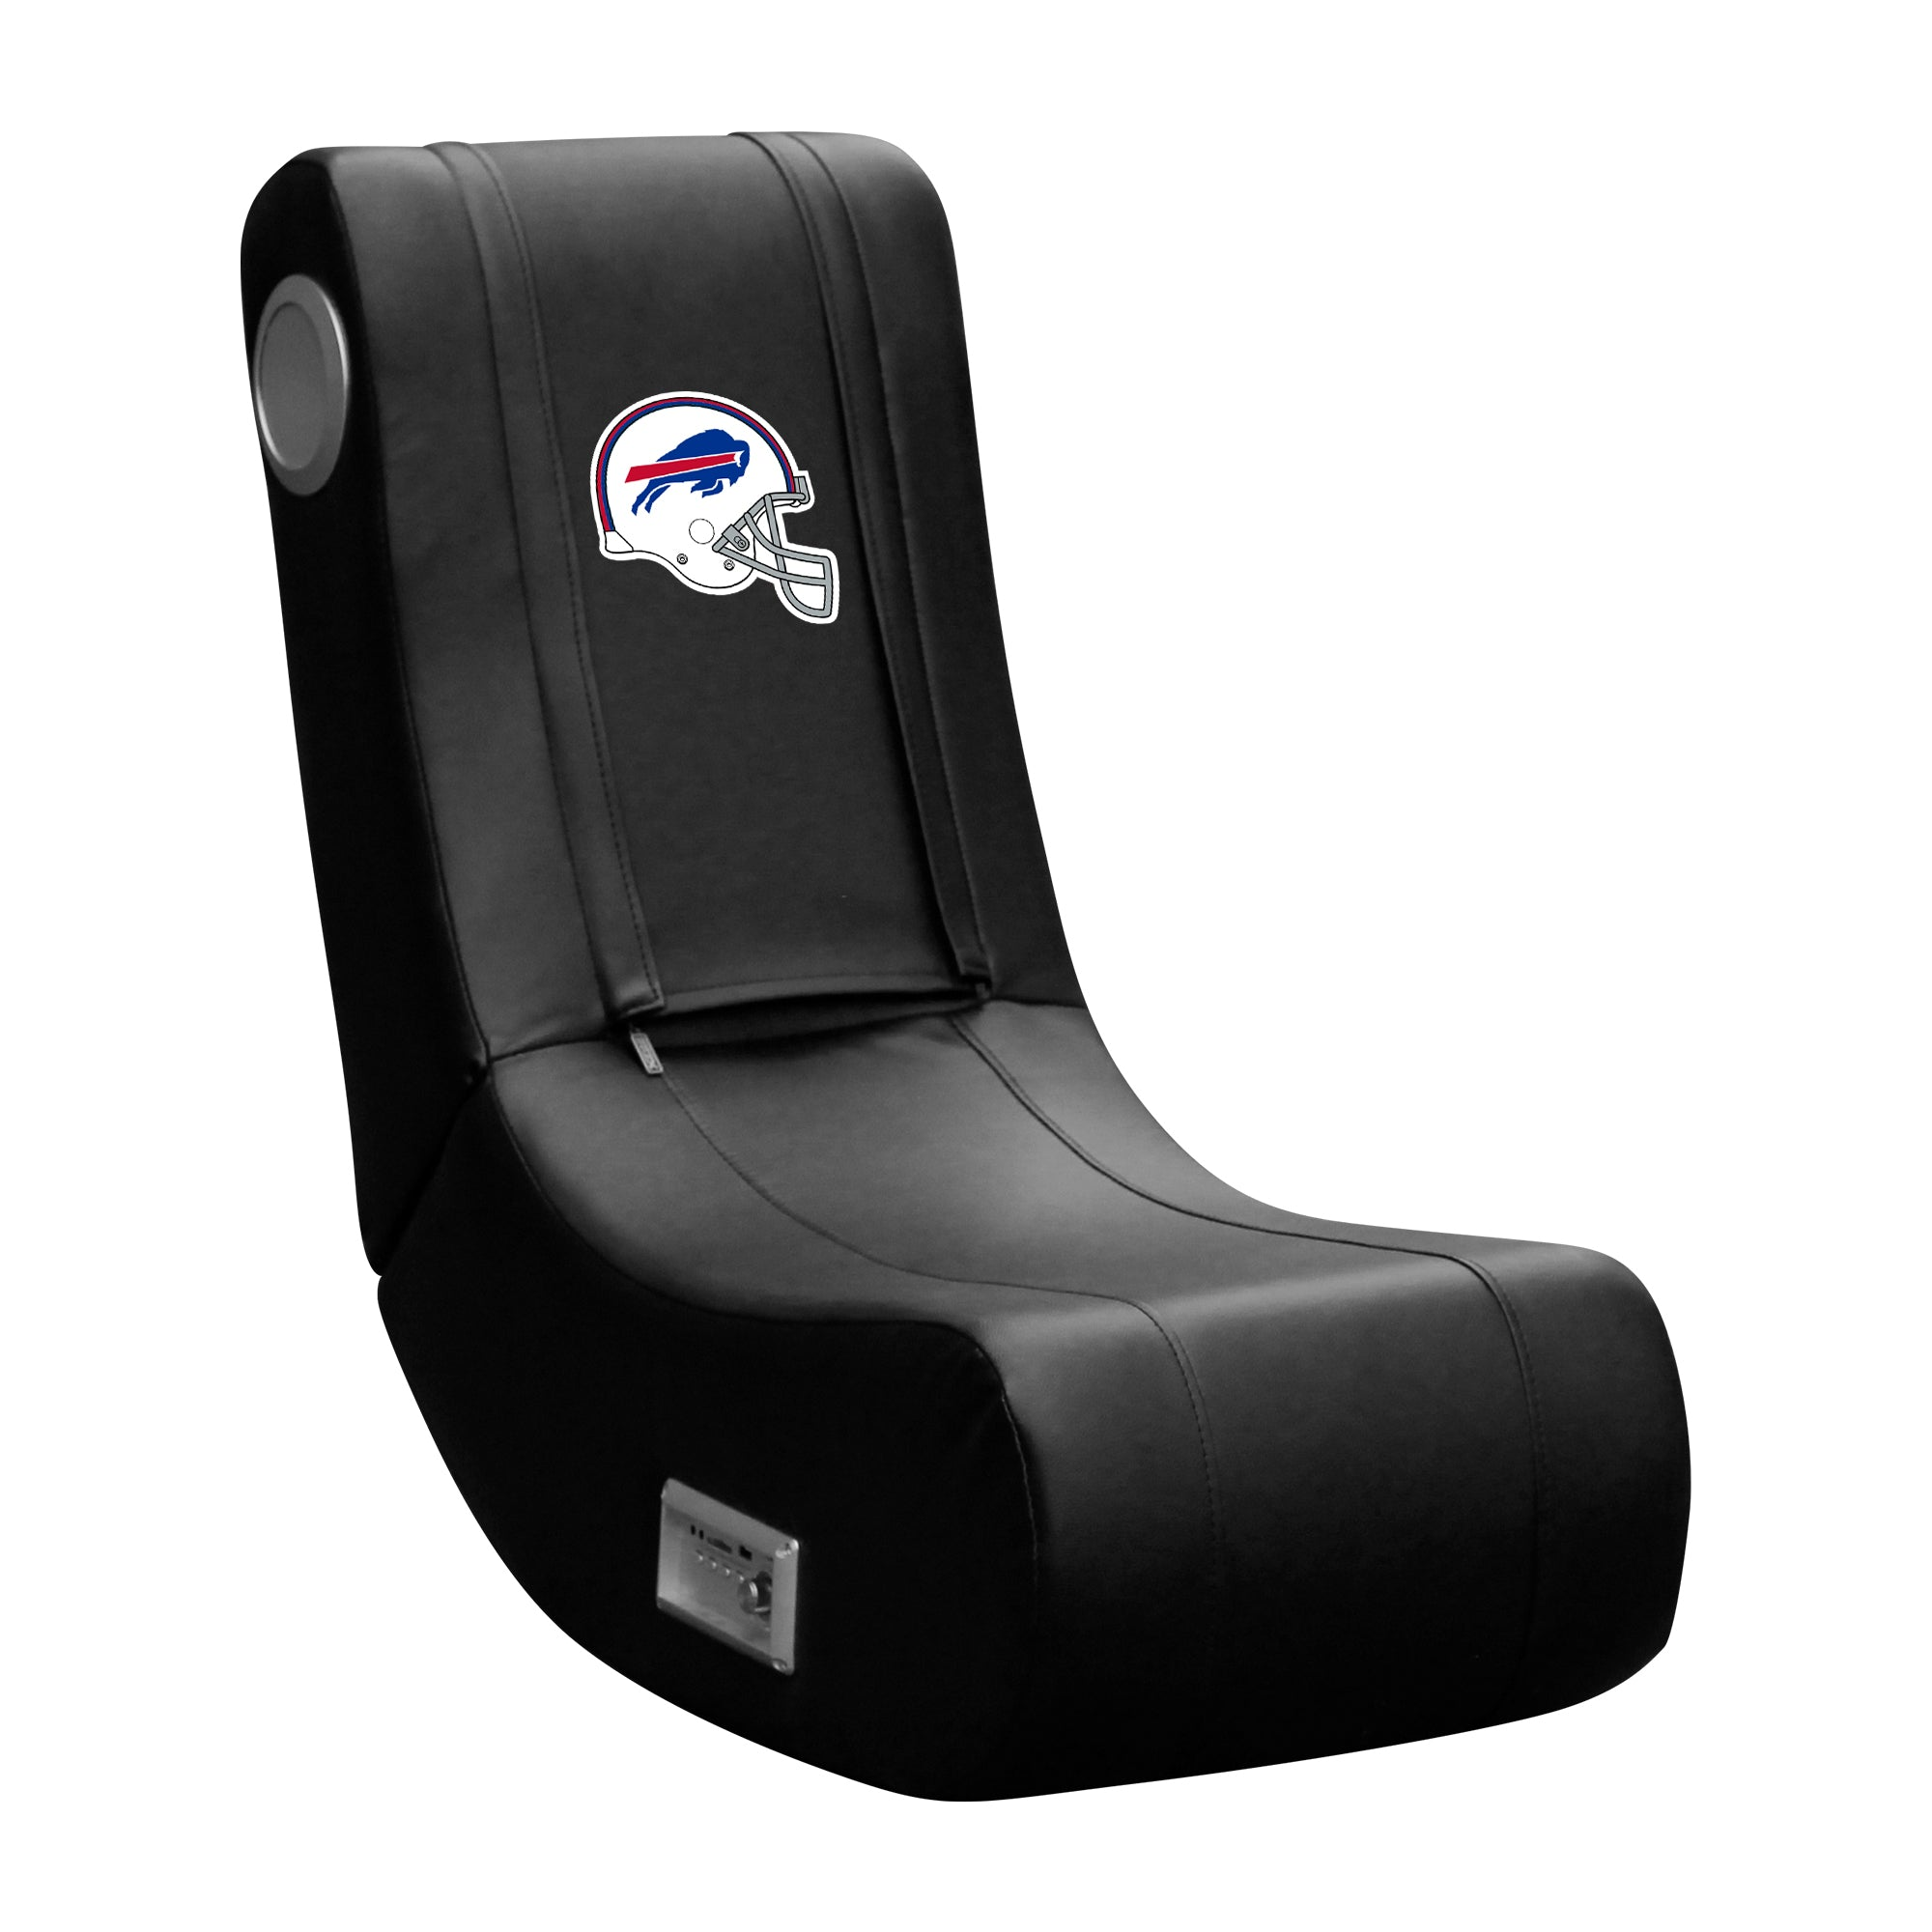 Game Rocker 100 with  Buffalo Bills Helmet Logo